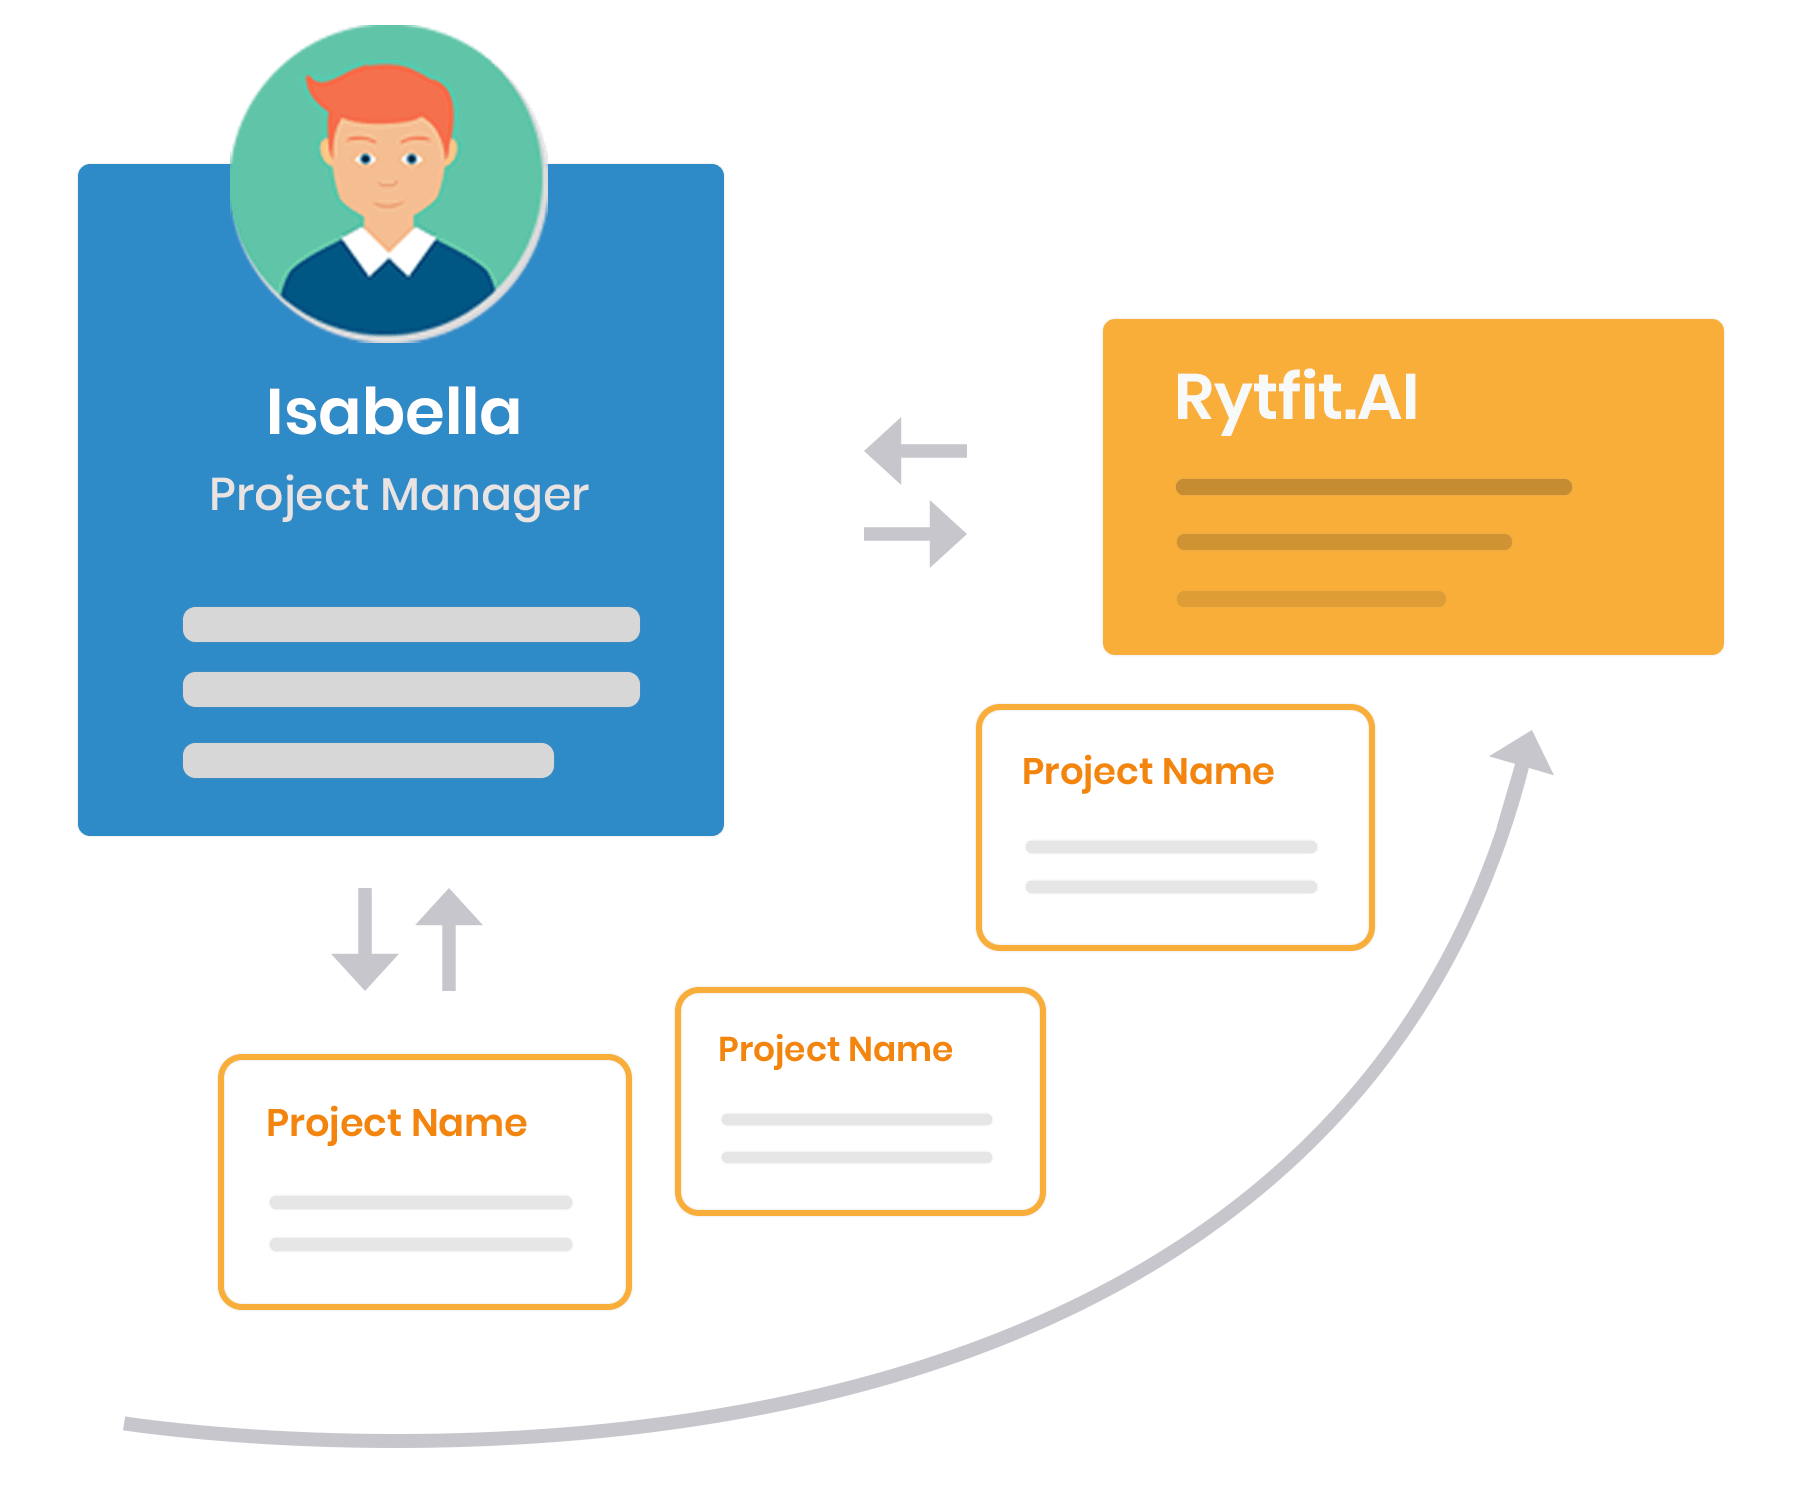 Recruiters engagement interface of rytfit.ai with candidates